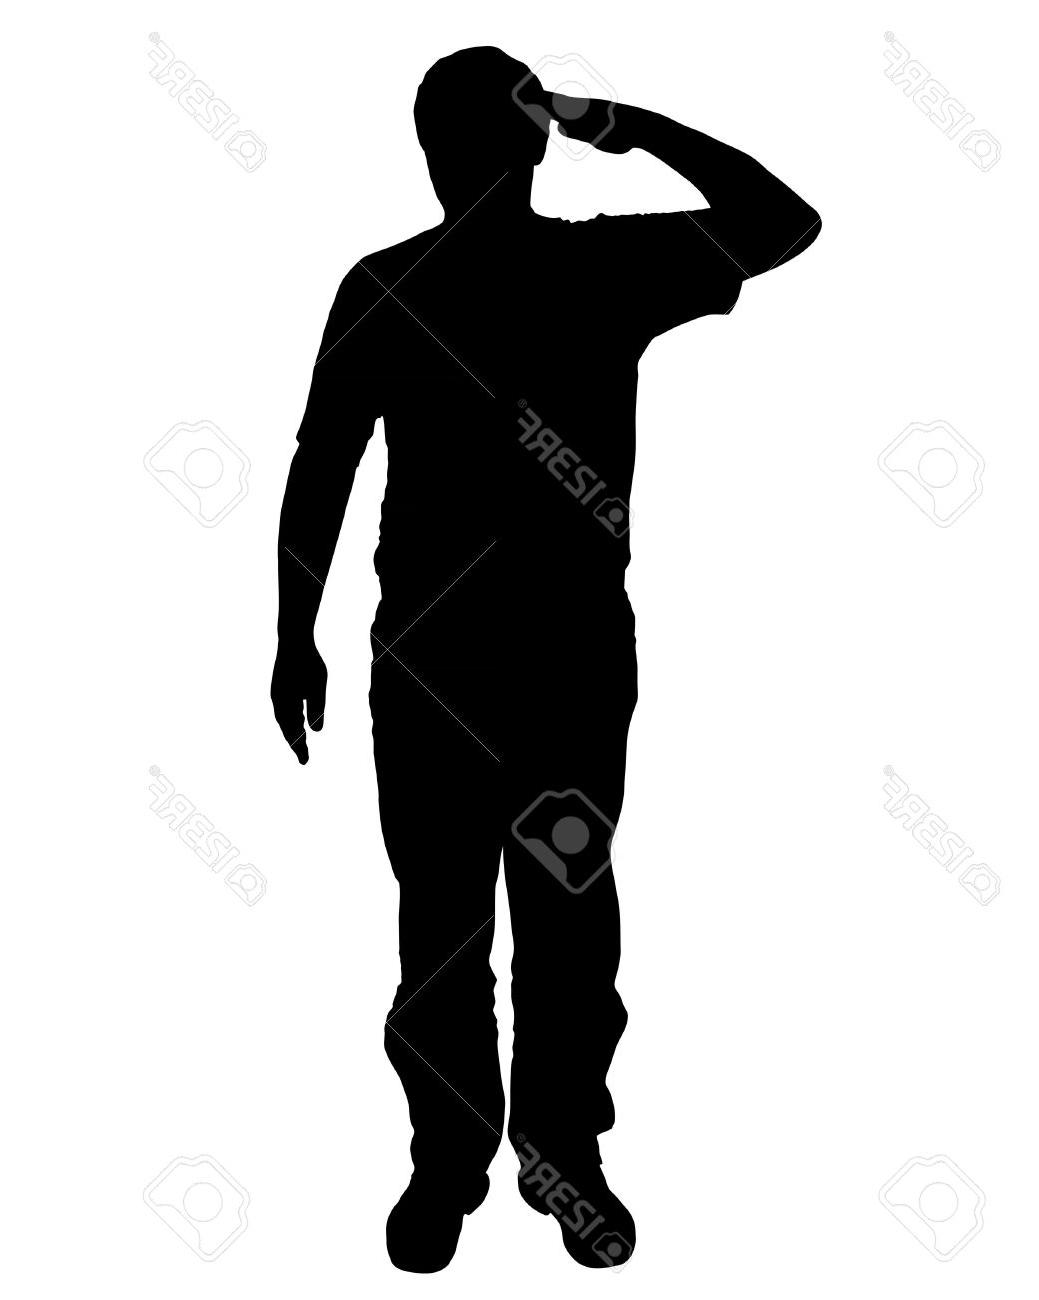 1039x1300 Best Military Salute Clip Art Library Free Vector Art, Images